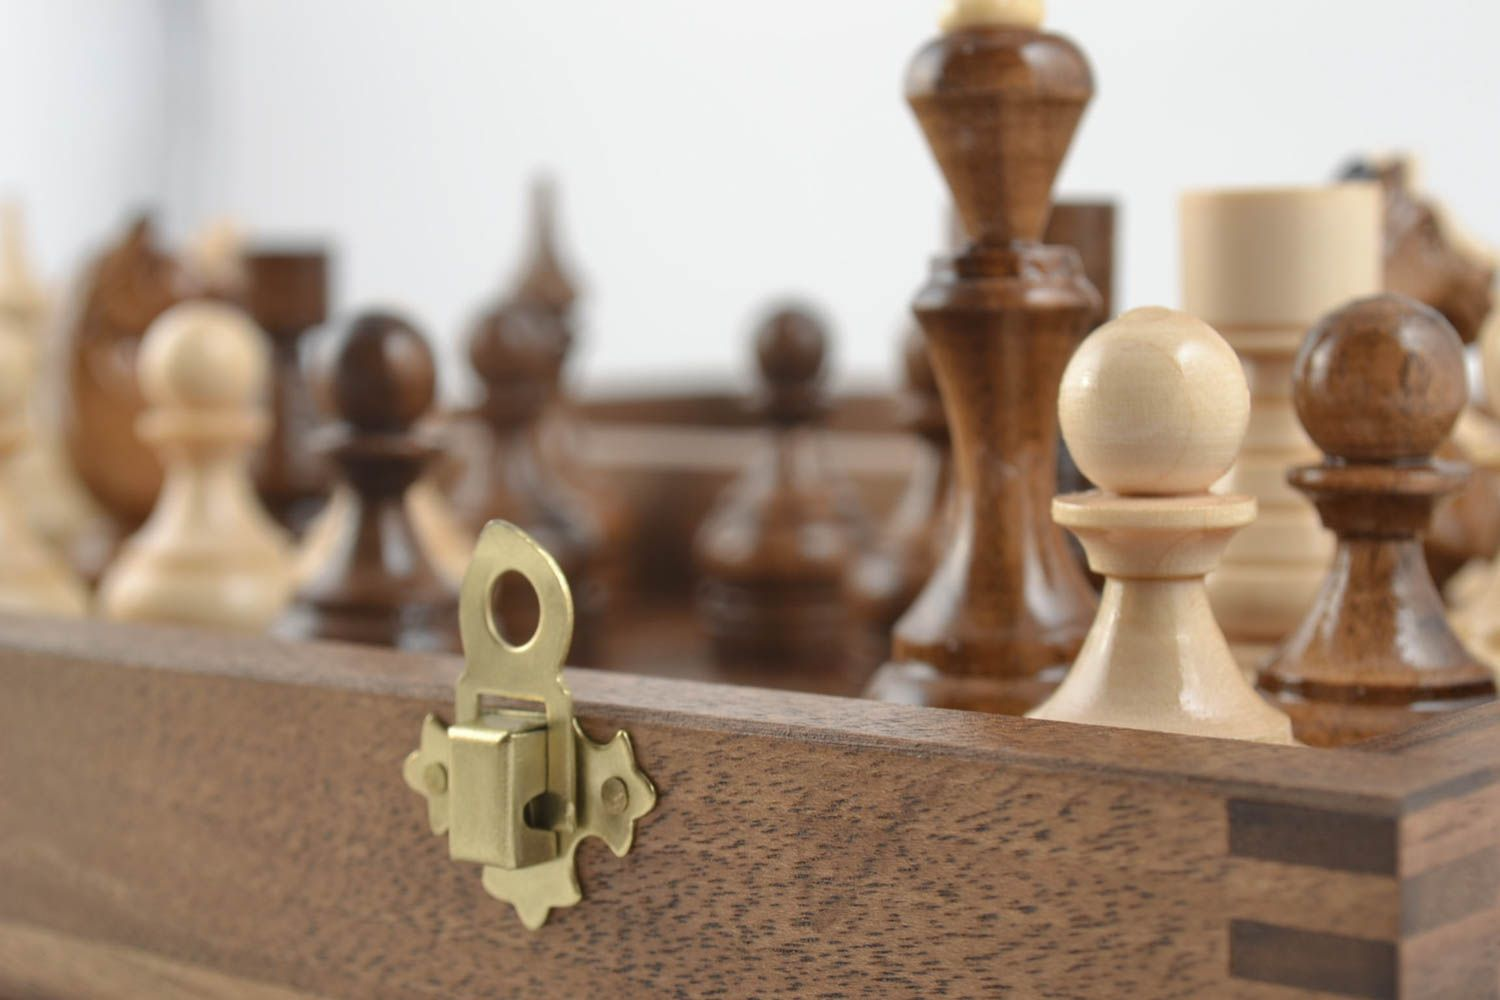 Handmade board games wooden chessboard chess pieces best gifts for him photo 4